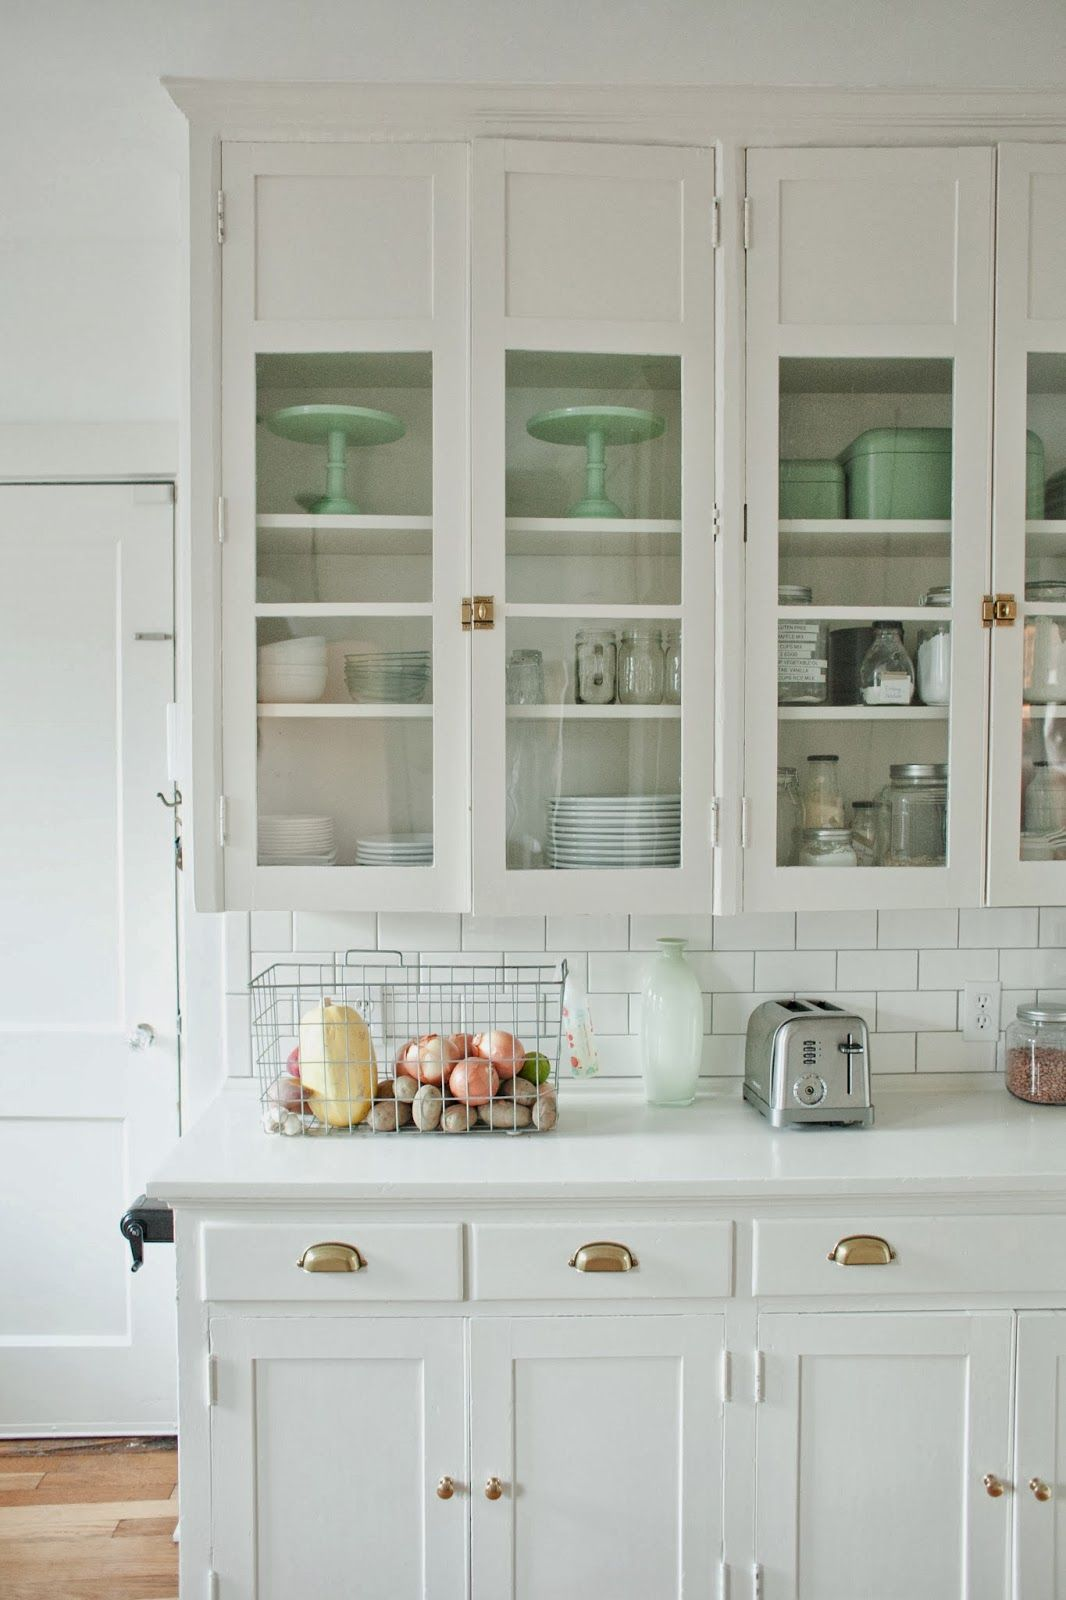 From the nato 39 s kitchen renovation before and after for 1920s style kitchen cabinets